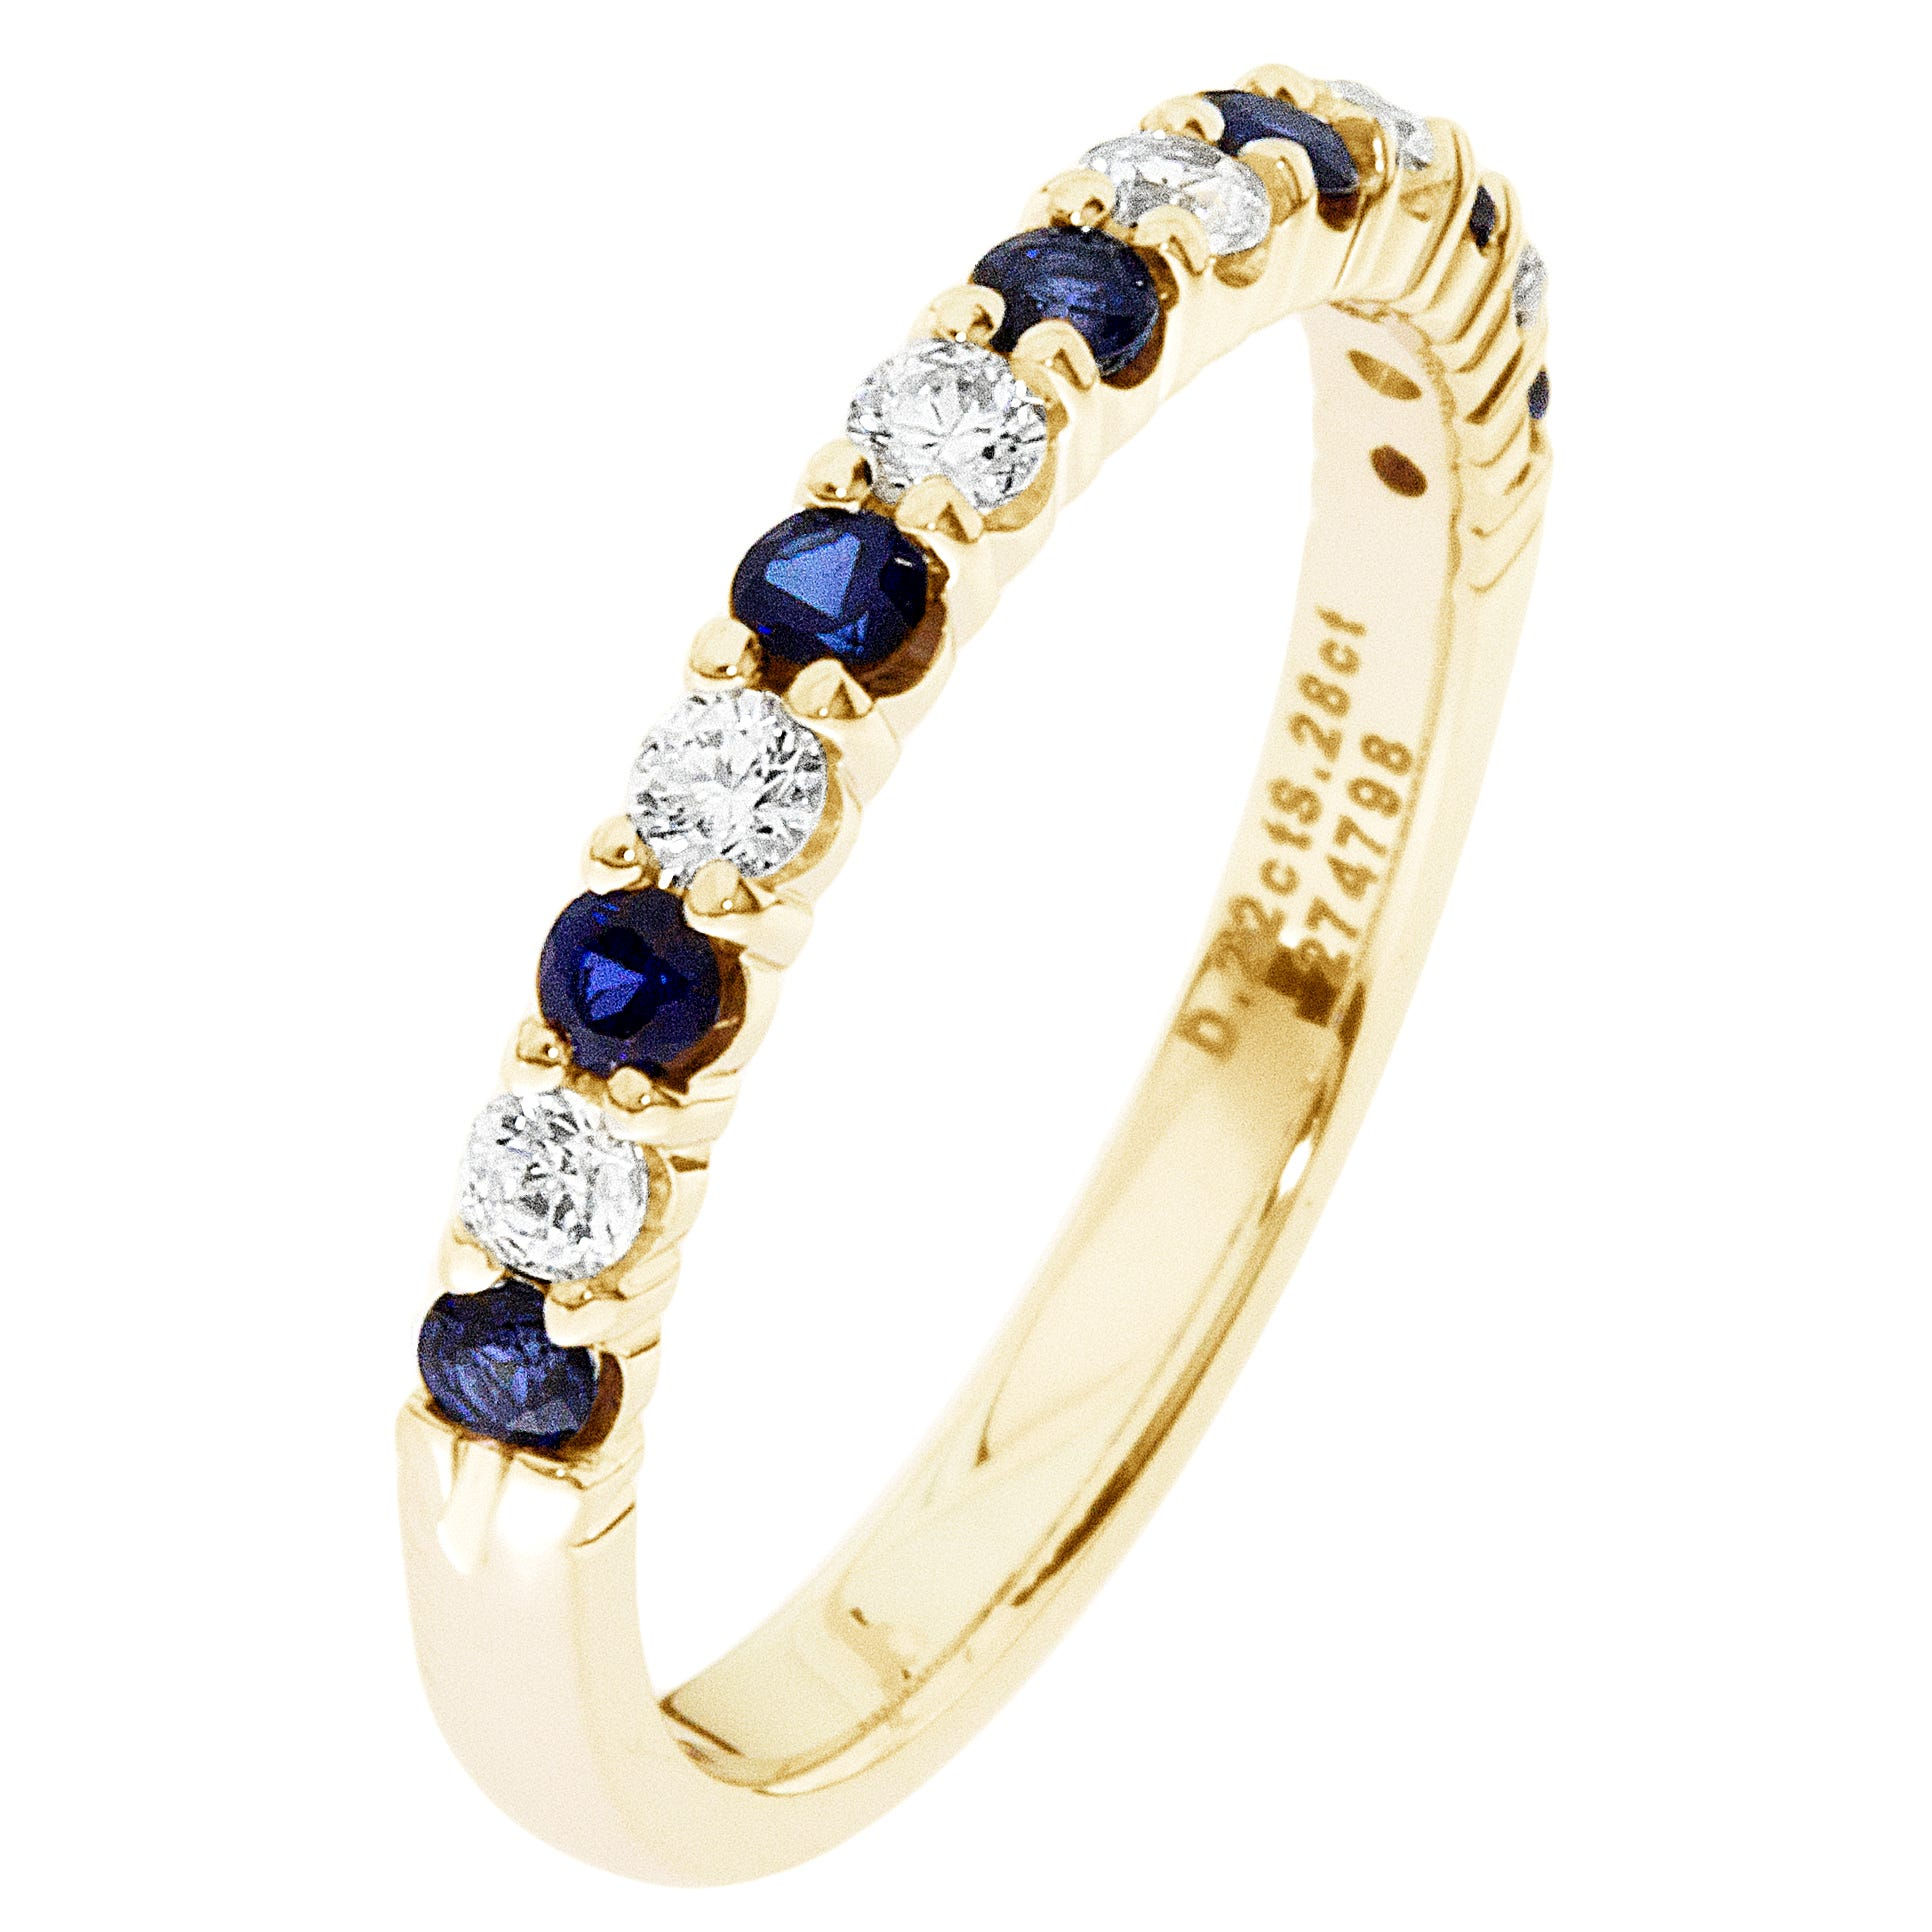 Diamond & Sapphire Prong Set 1/4ctw. Band in 14k Yellow Gold